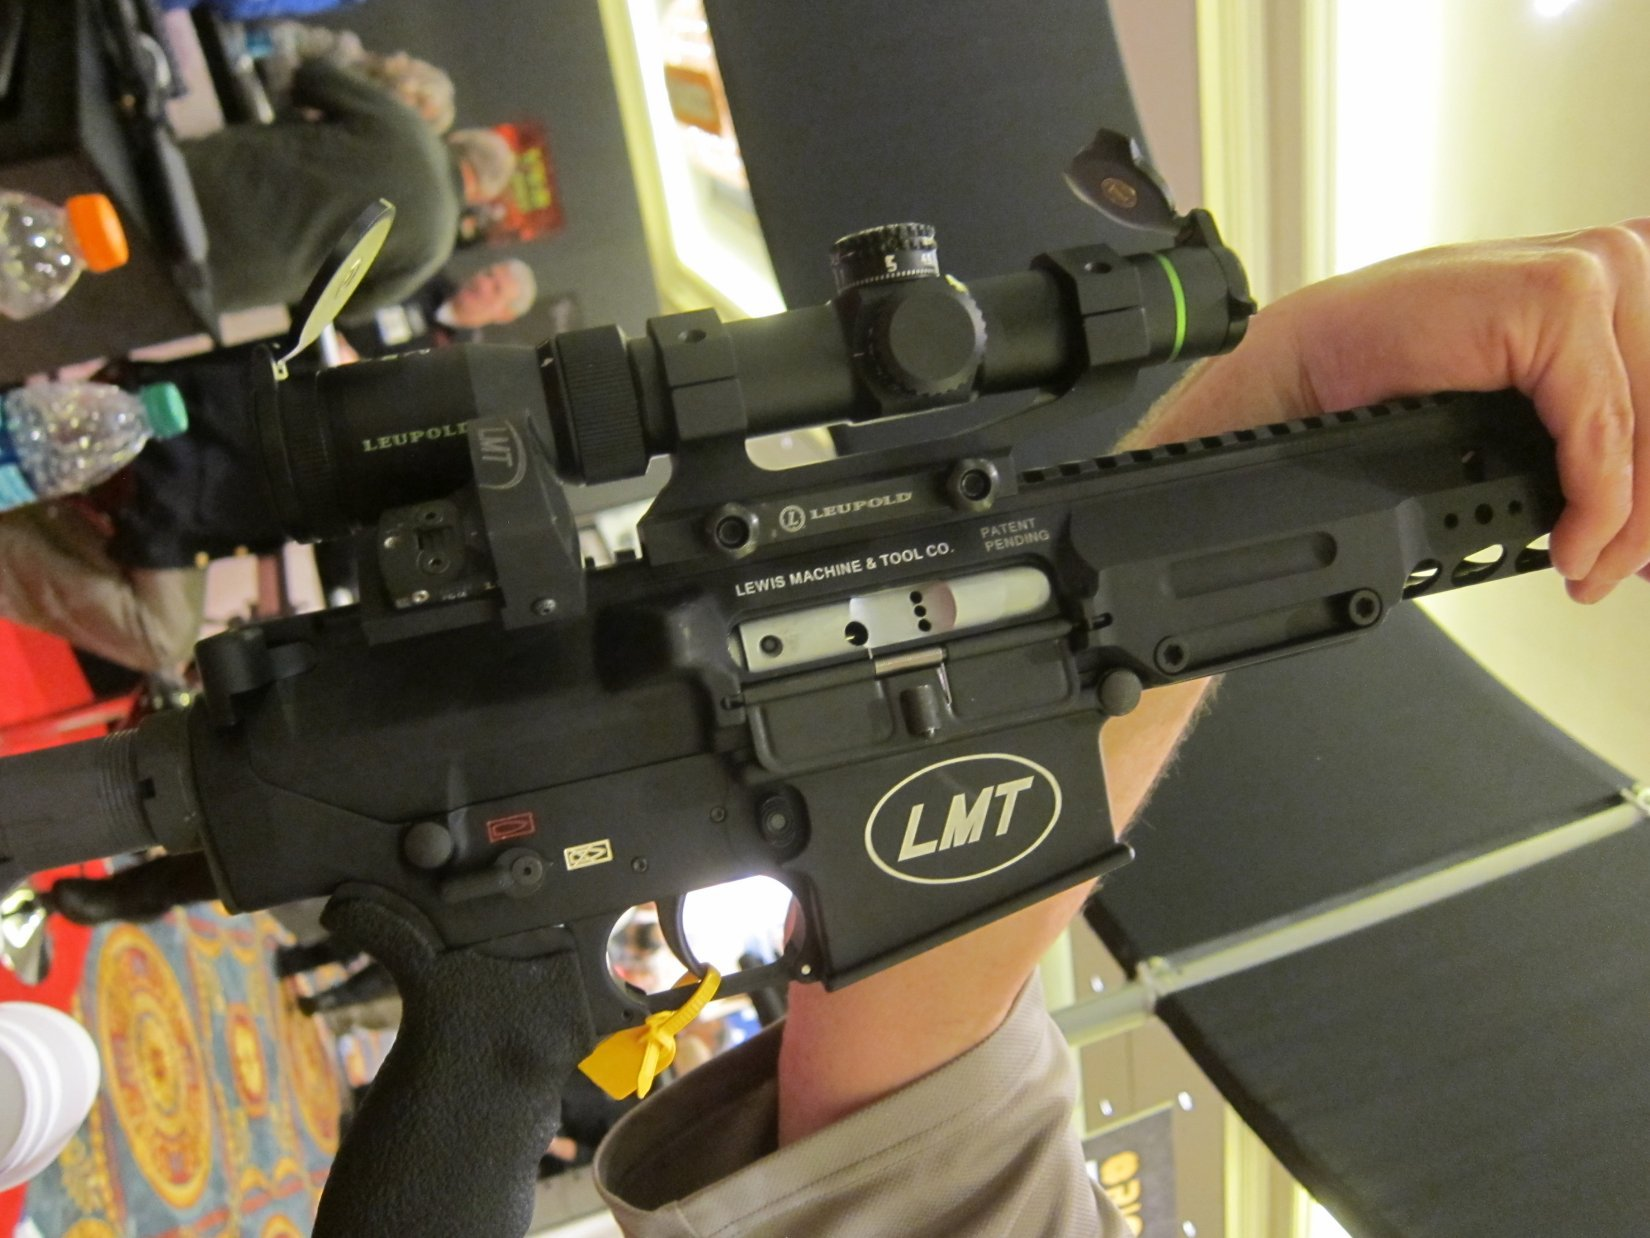 Lewis Machine  Tool LMT LM8MWS Tactical AR 10 7.62x51mm NATO .308 Win. Upper Receiver SHOT Show 2012 DefenseReview.com DR 8 Lewis Machine & Tool LMT LM8MWS (also written LM8 MWS) 16 Slick Receiver Monolithic Rail Platform 7.62mm NATO/.308 Win. Tactical AR 10/SR 25 Type Battle Rifle/Carbine Upper Receiver(s) with Lightweight Modular Rail System